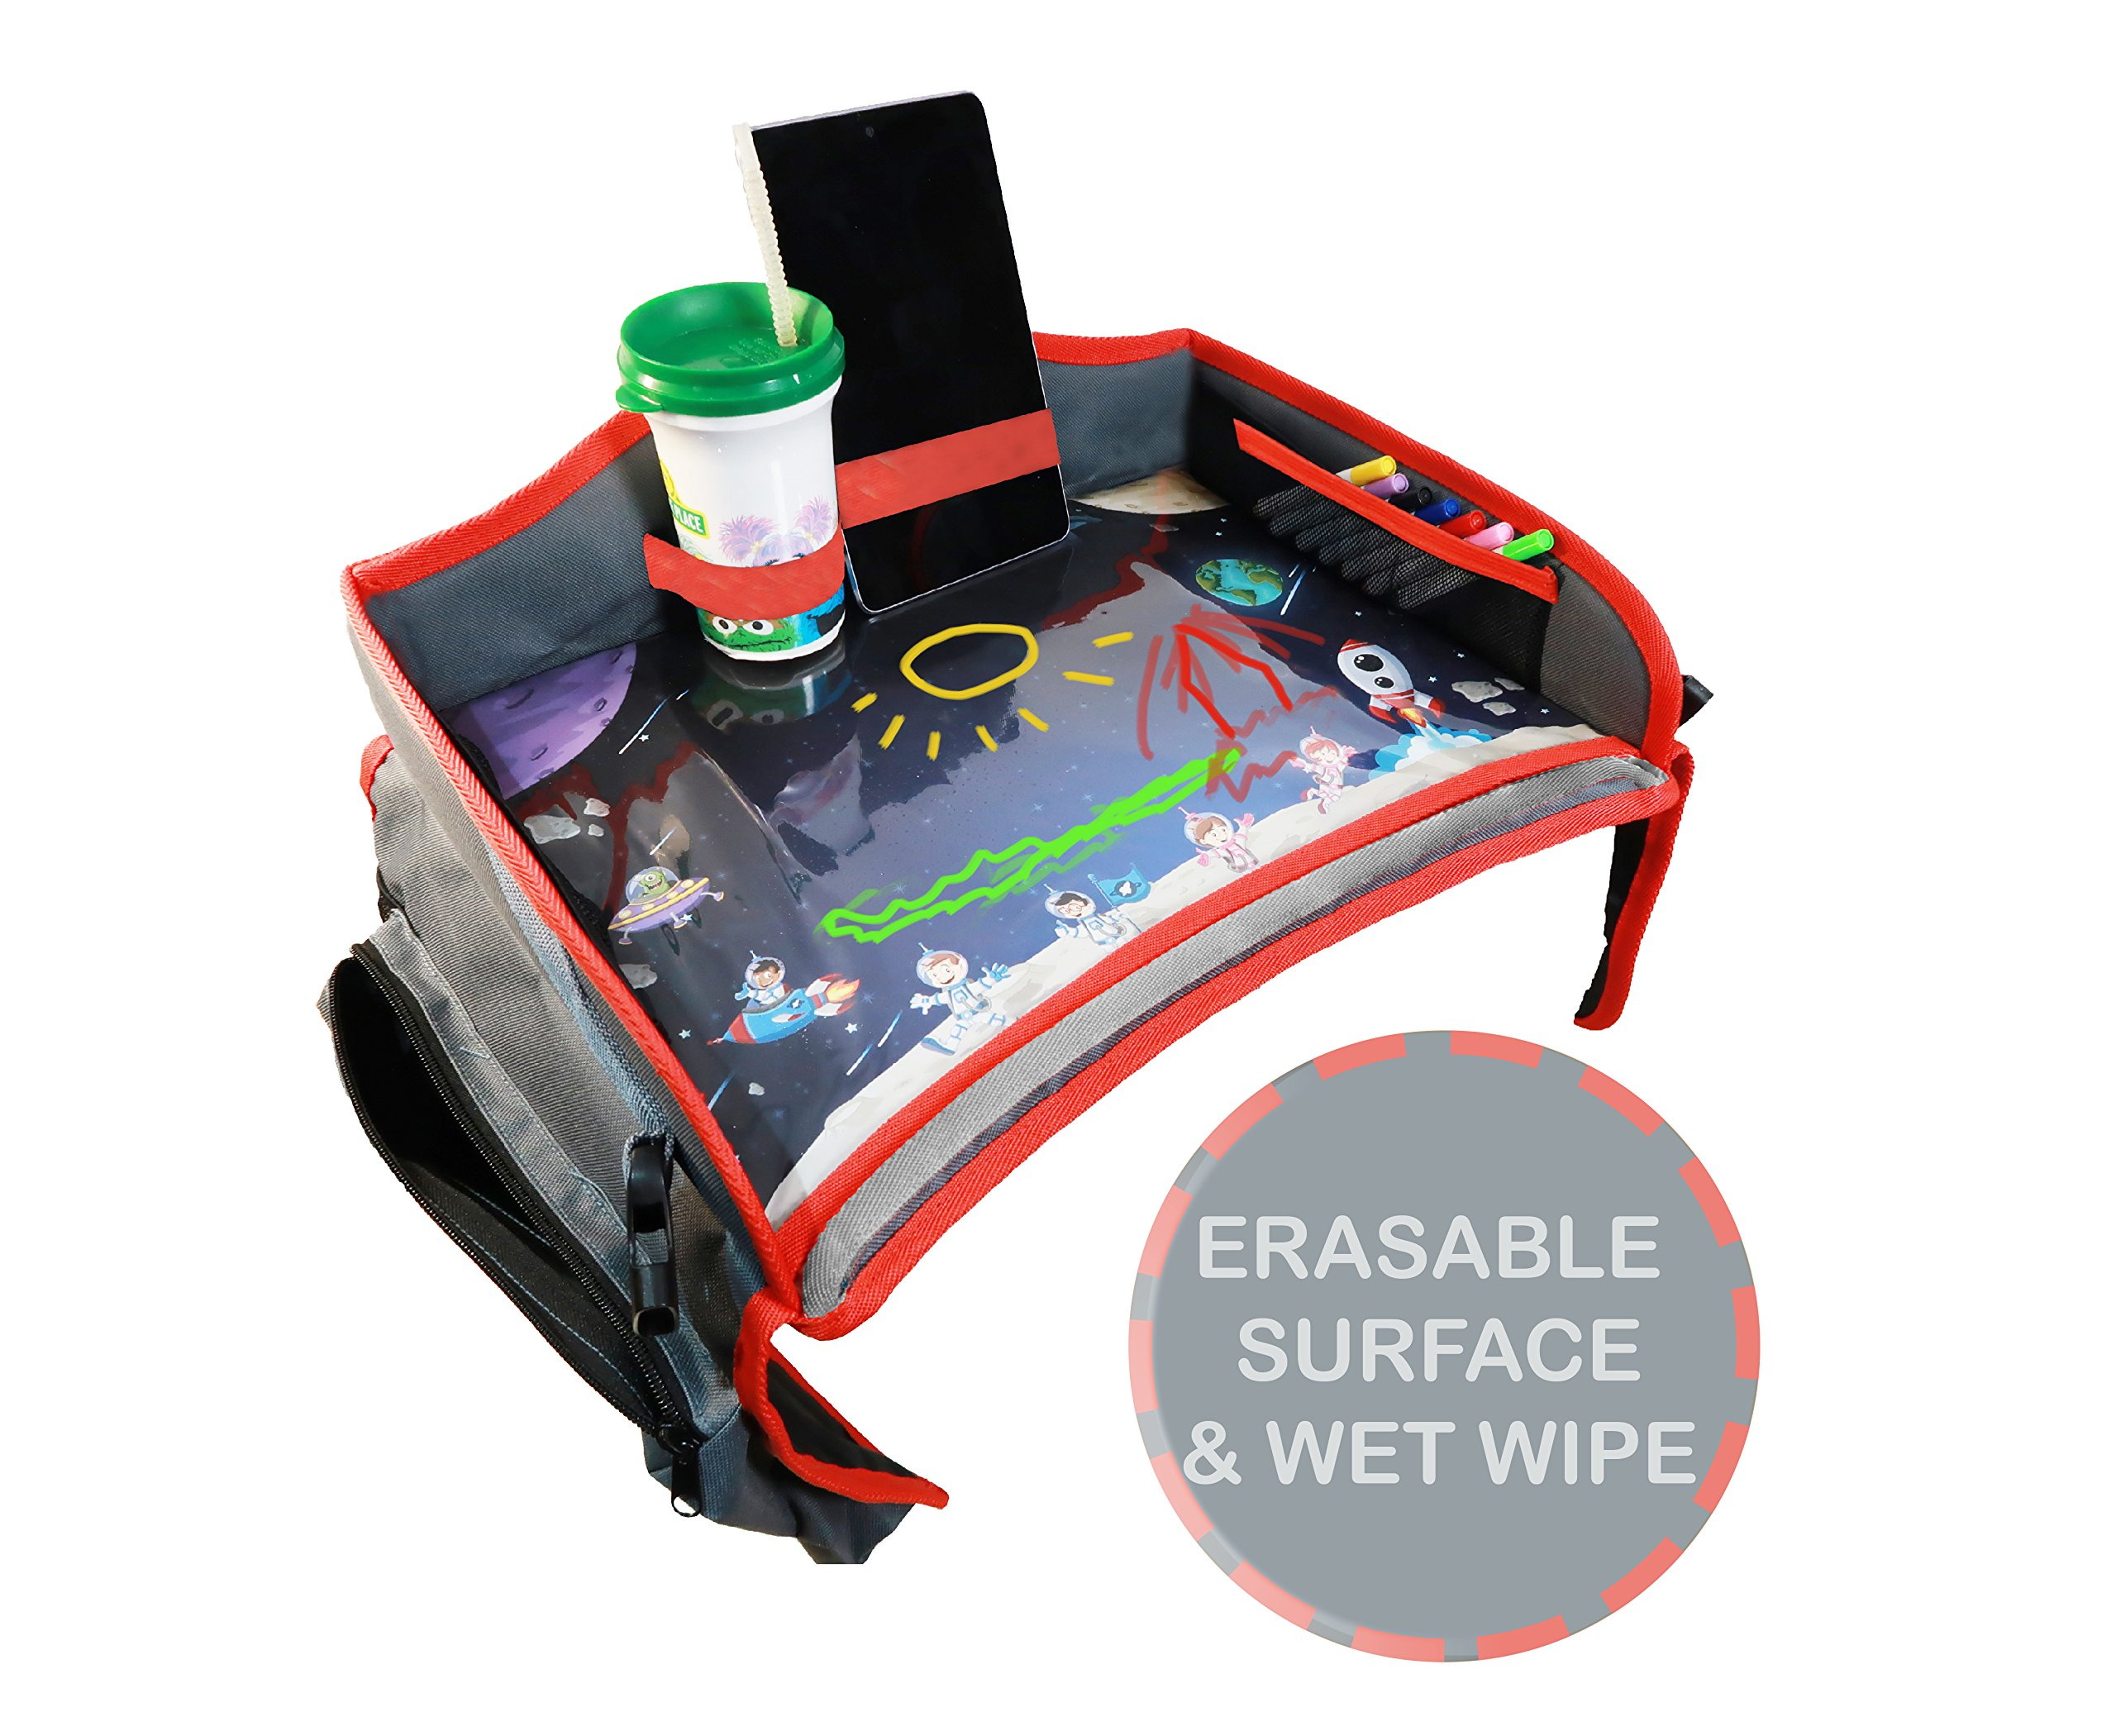 Toddler Car Seat Travel Tray. Kids Travel Tray with Erasable Surface, Side Pockets and Wet Wipe for Any Car Seat, Stroller, Airplane and High Chair by Little Explorer